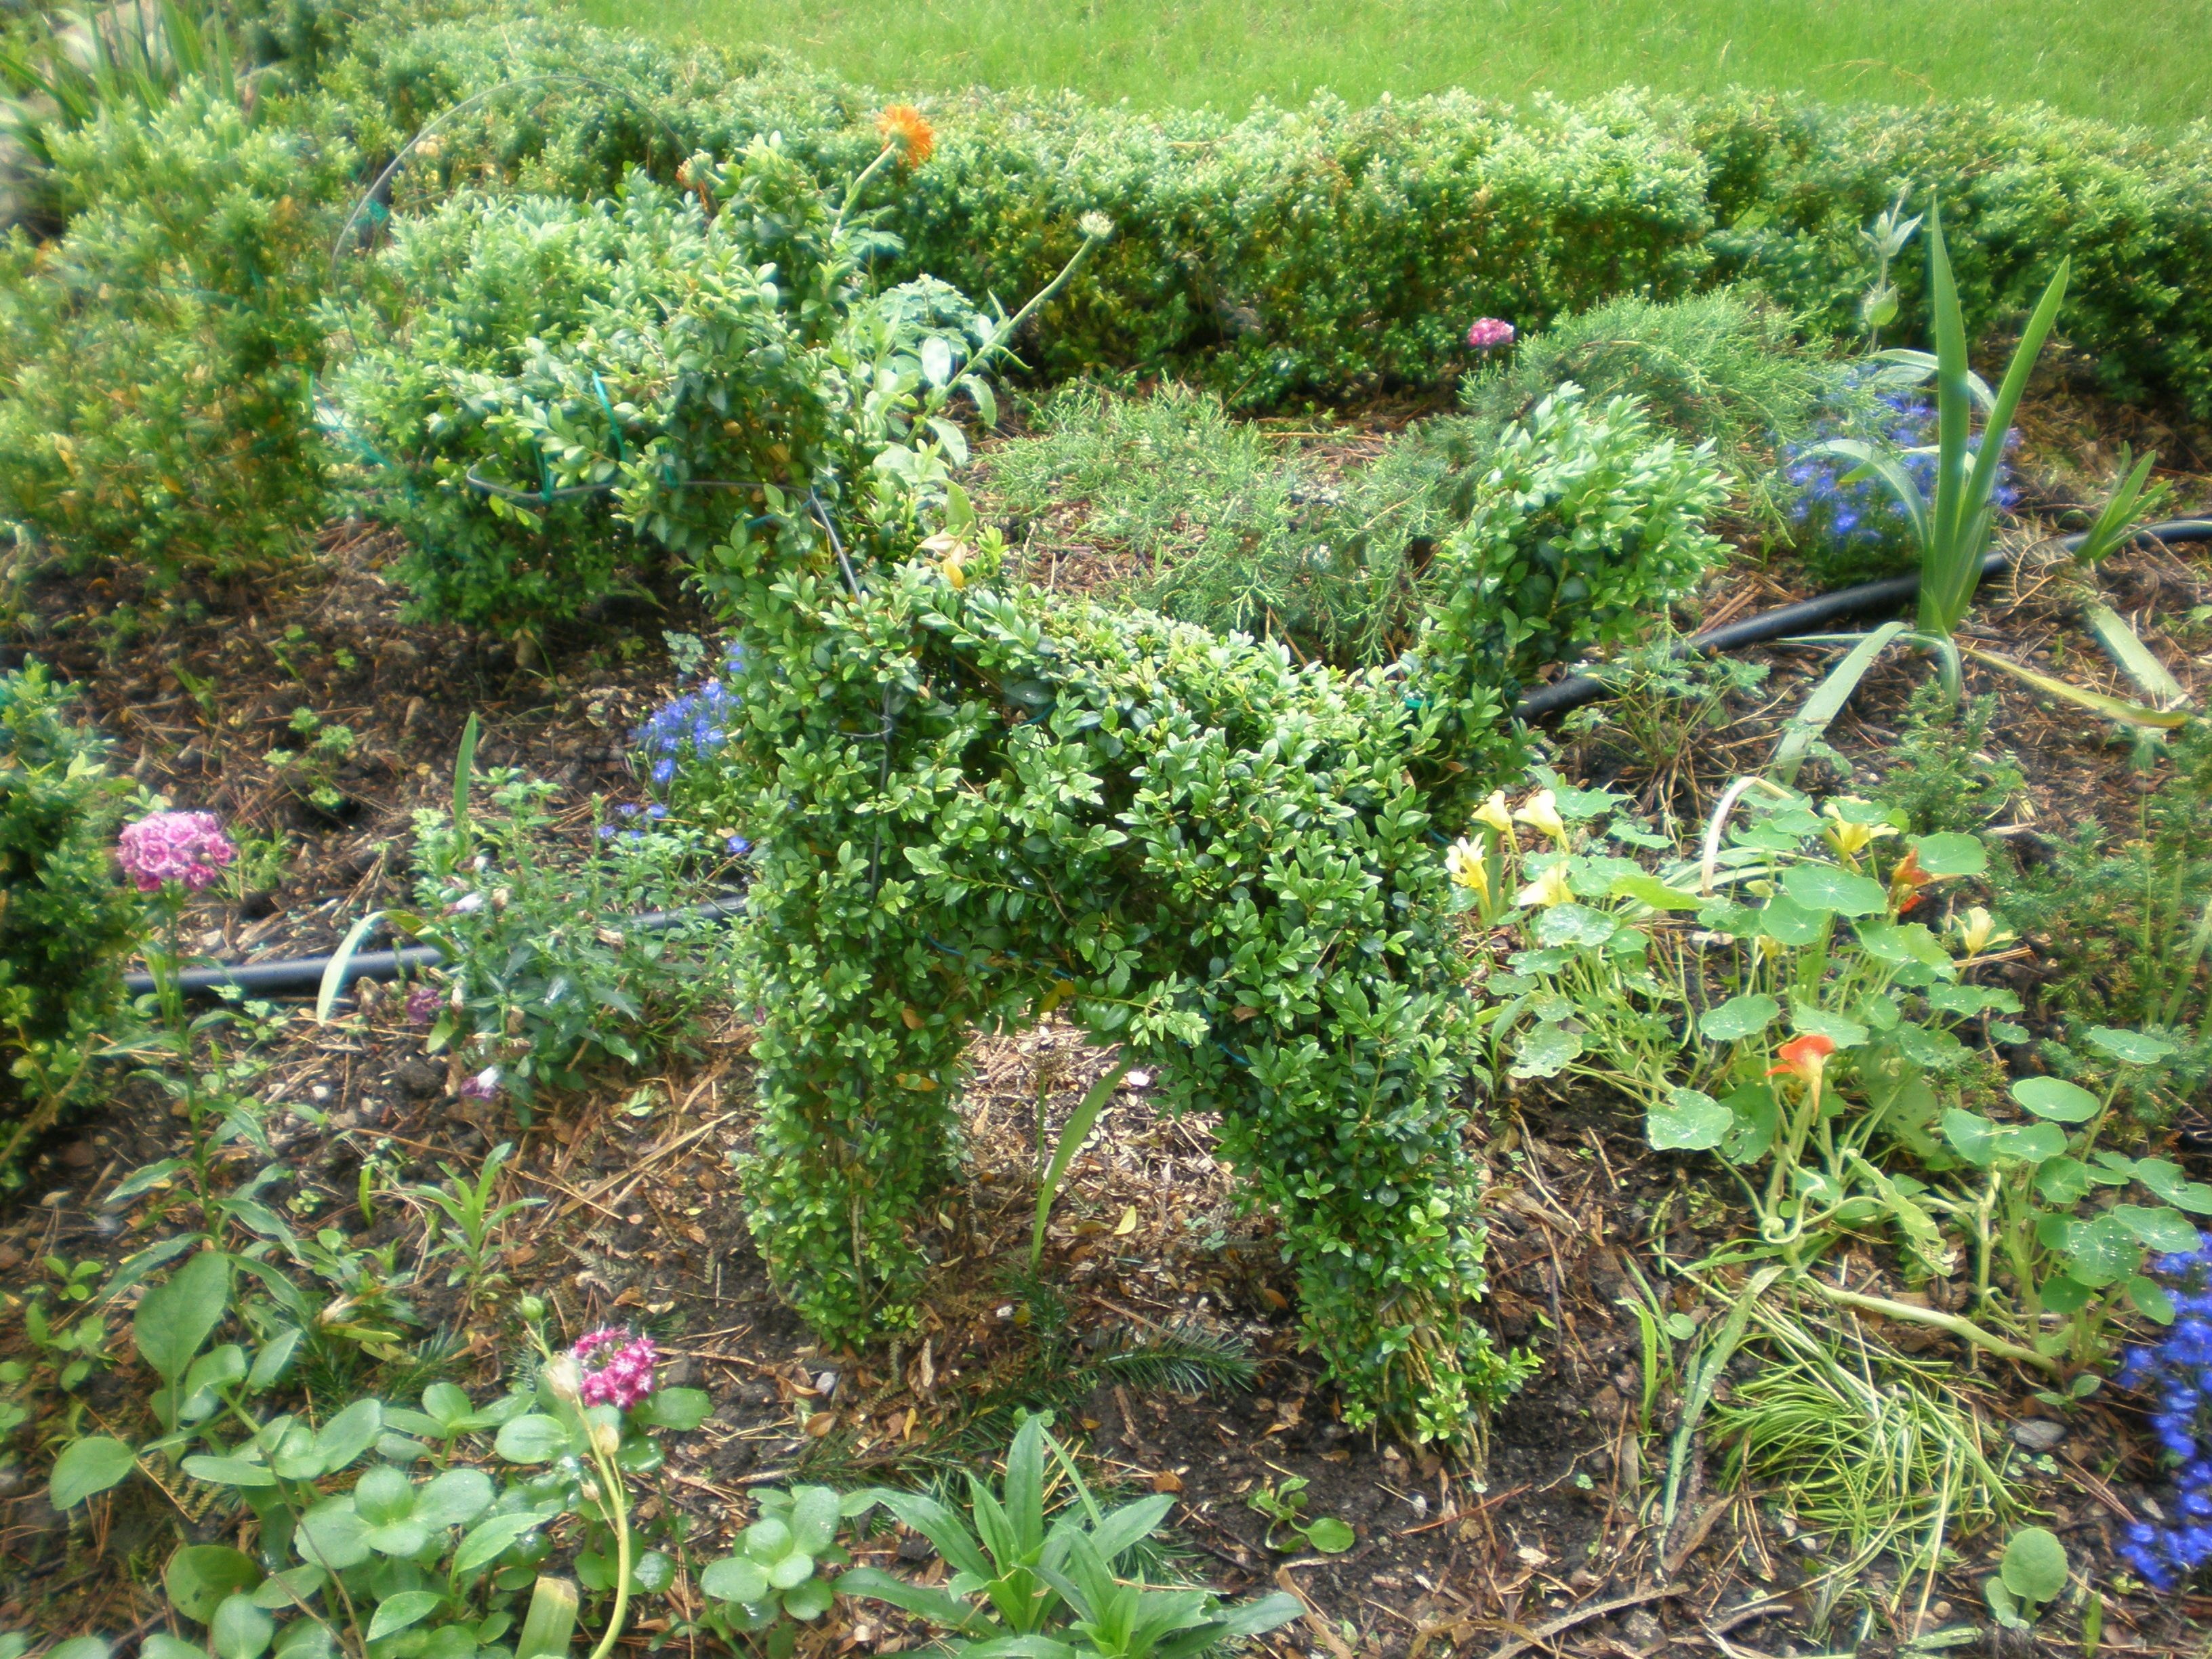 Dog Friendly Backyard Ground Cover : Pin by Thorngrove Manor on Fairytale Gardens at Thorngrove Manor www